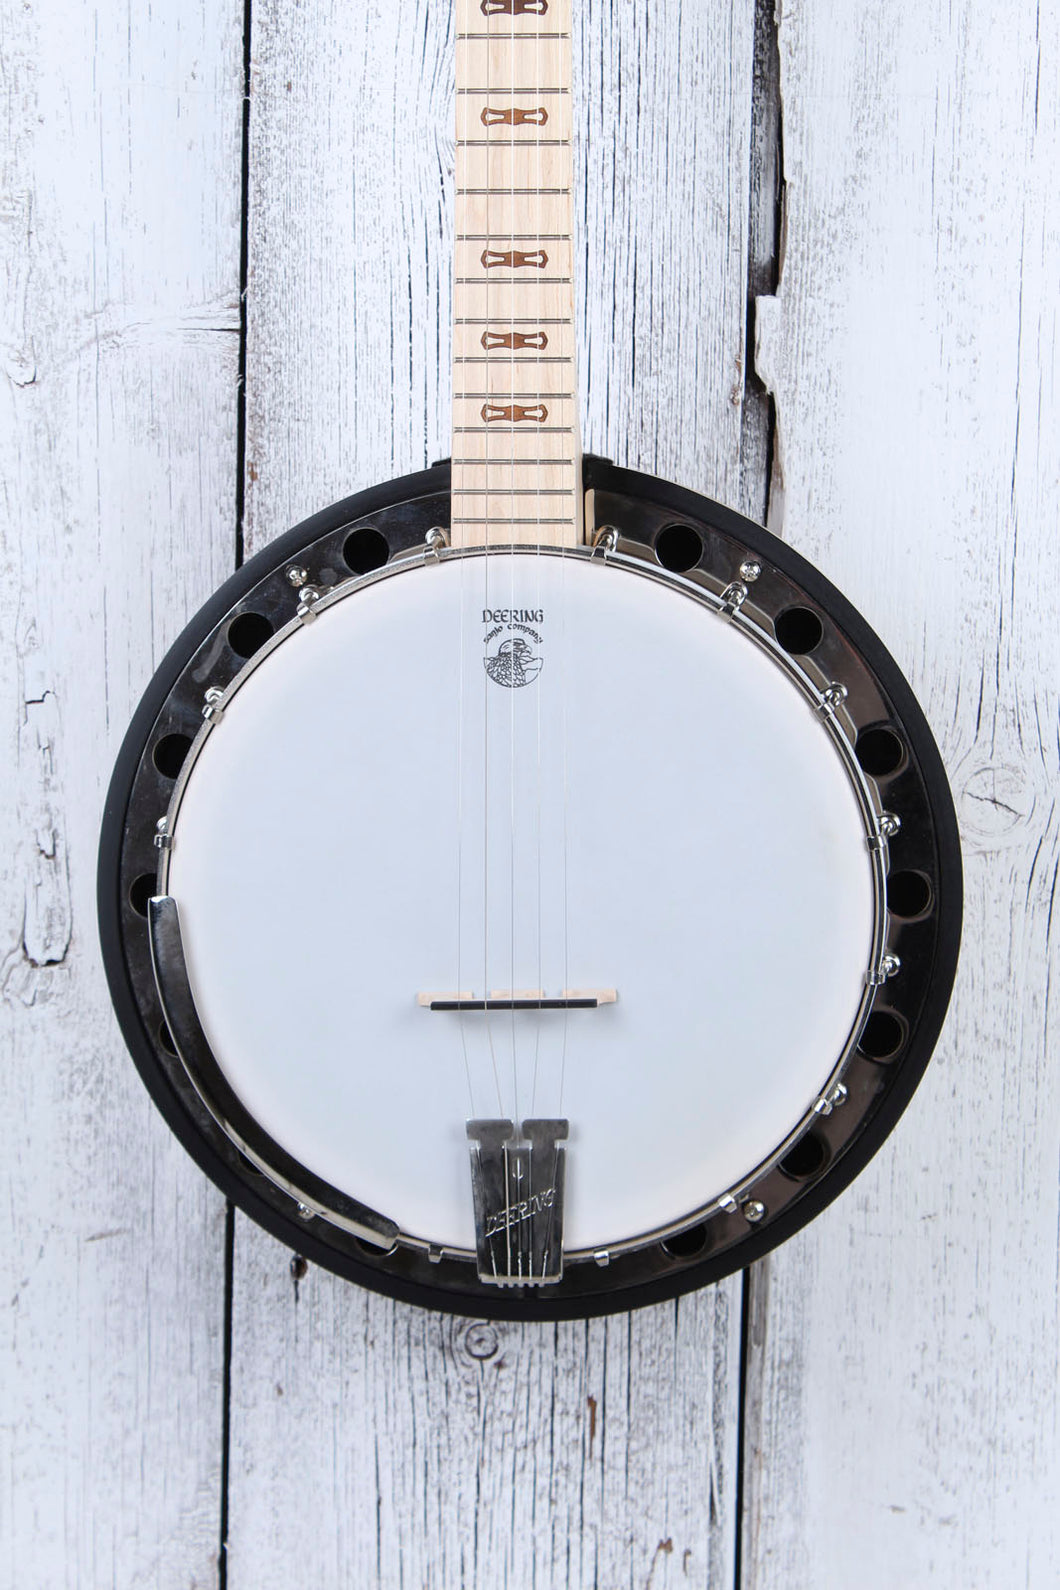 Deering Goodtime 2 Two 5 String Banjo with Maple Resonator Made in the USA